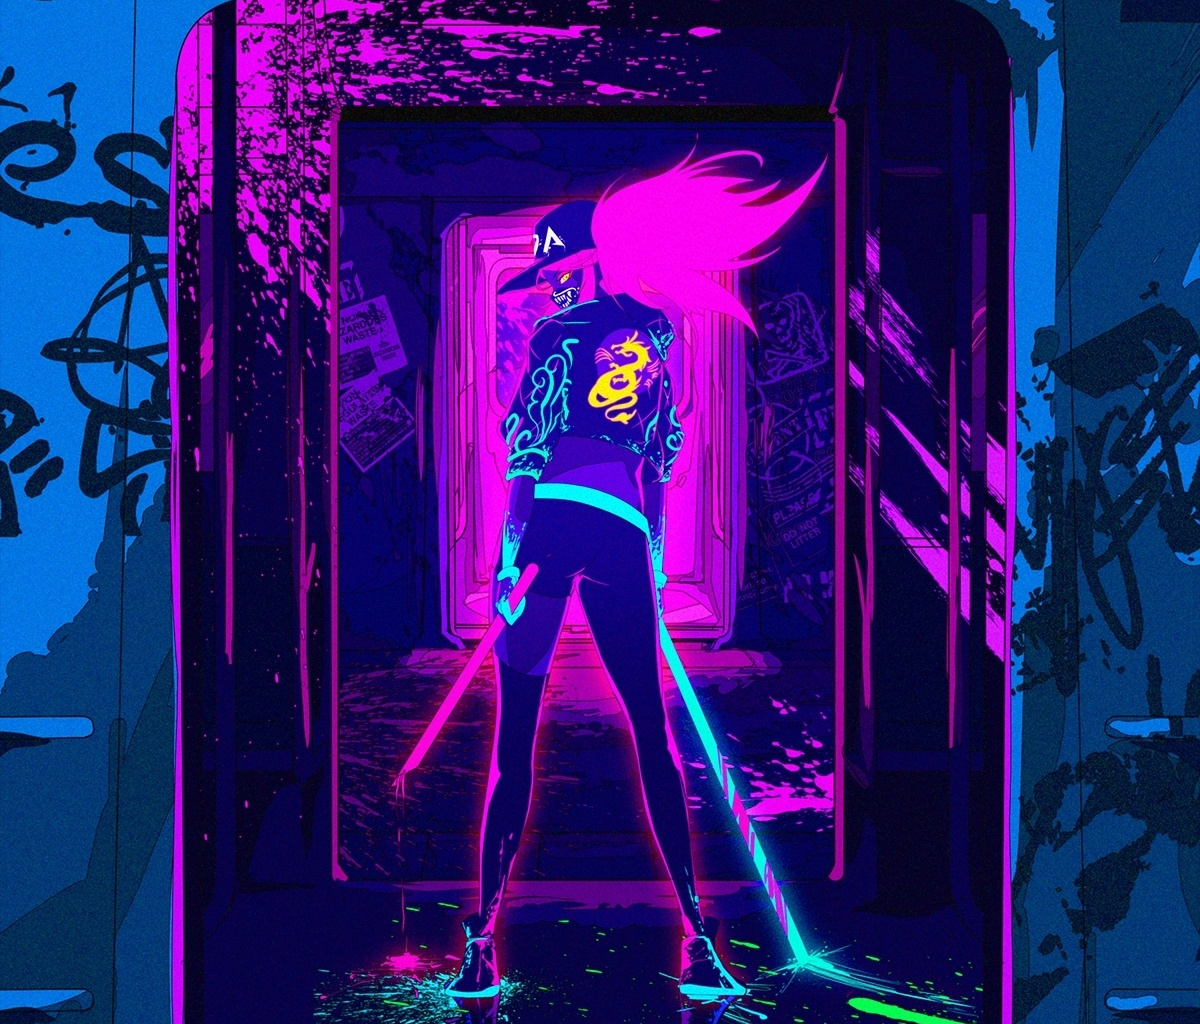 Artwork League Of Legends Akali Online Game Neon Kda Pop